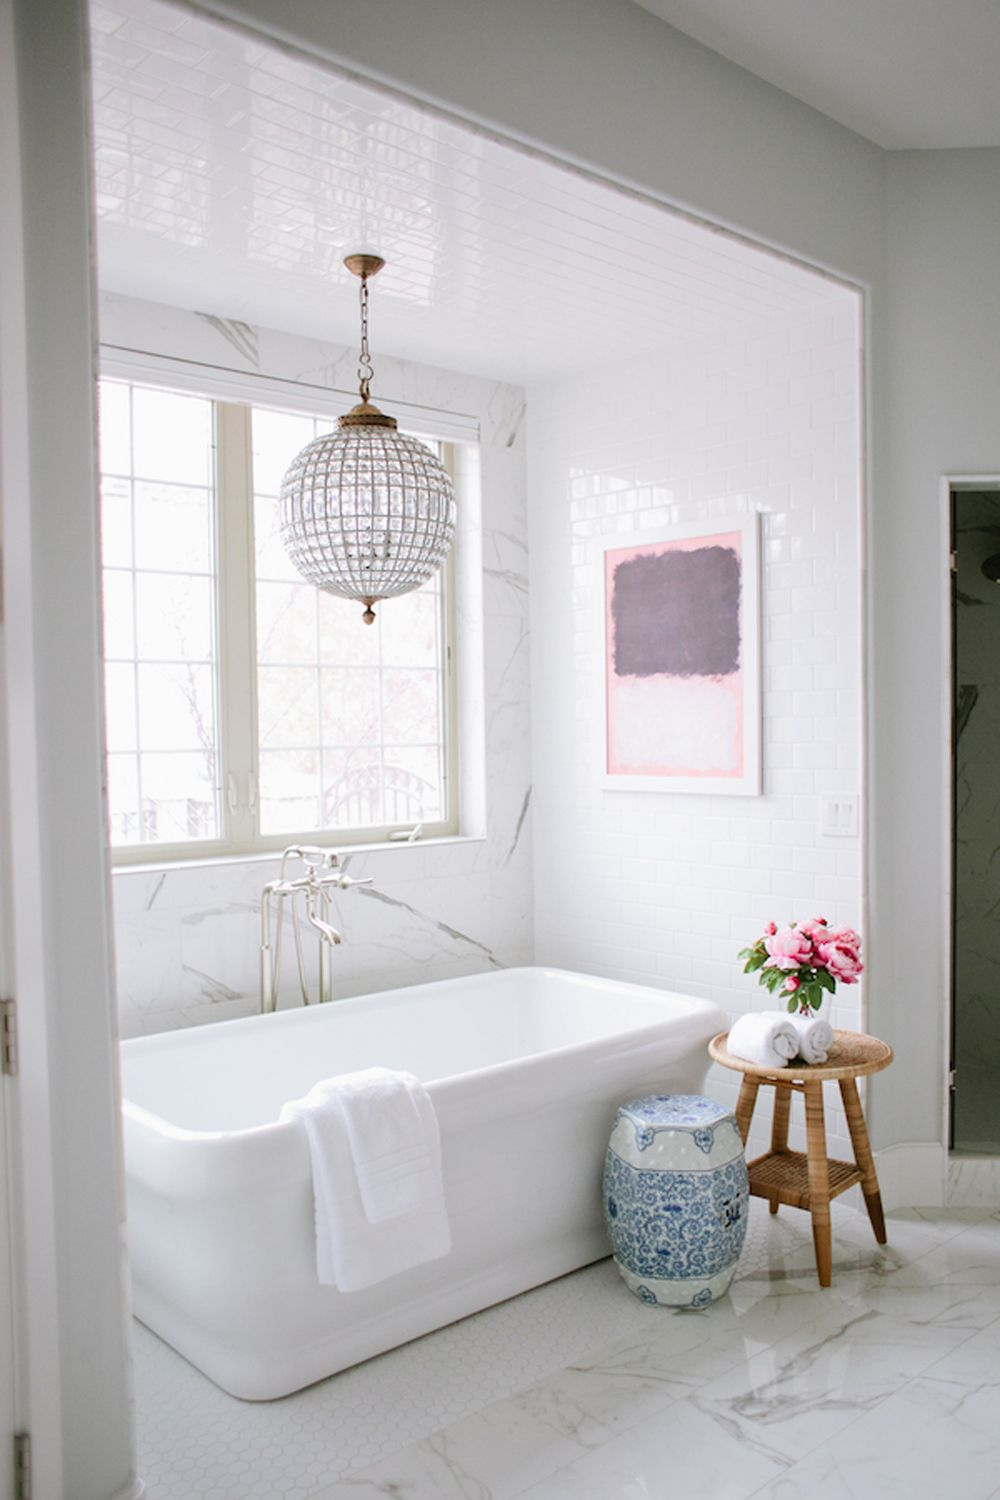 Stand alone tub in enclave of all white bathroom design | House of ...